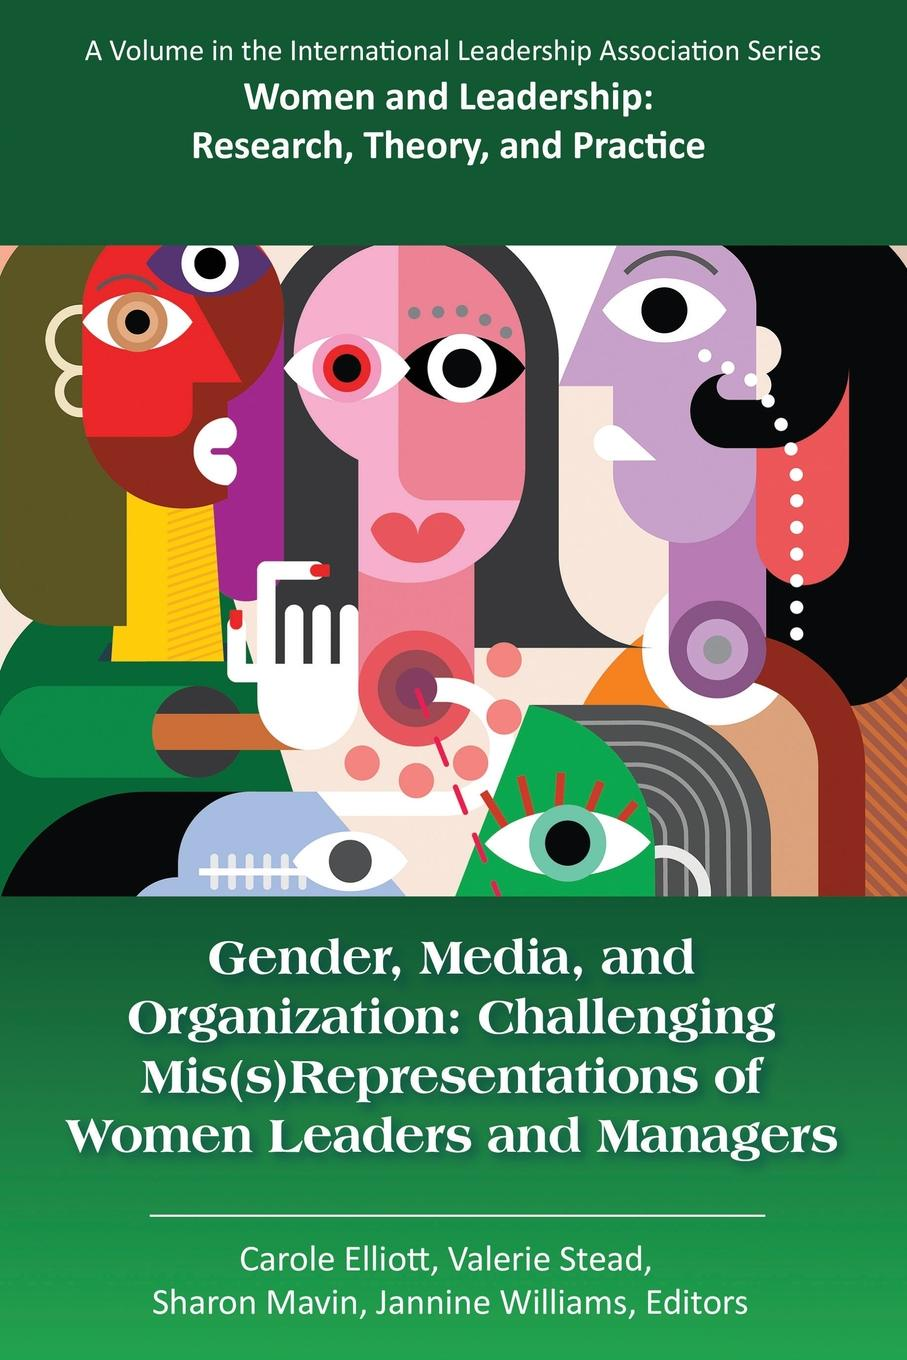 цена на Gender, Media, and Organization. Challenging Mis(s)Representations of Women Leaders and Managers